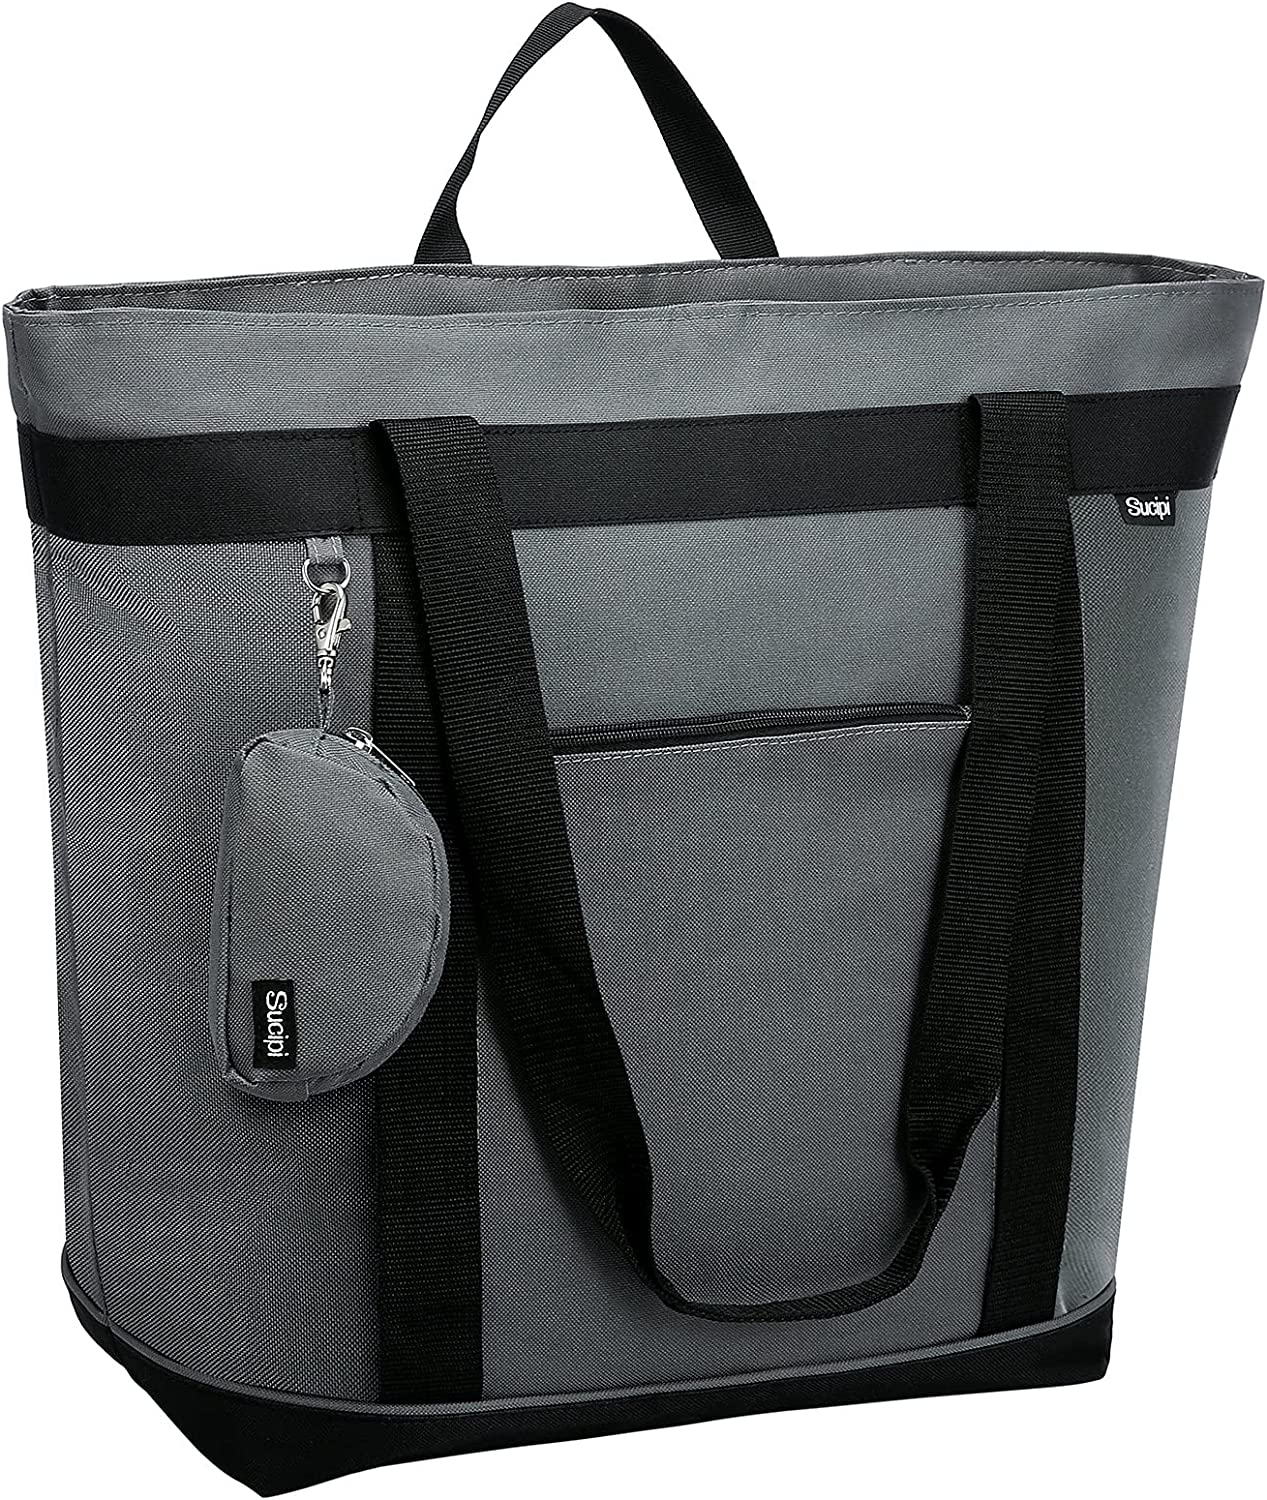 Sucipi Insulated Cooler Bag Insulated Tote Bag Transport Cold Or Hot Food Collapsible Grocery Cooler Bag